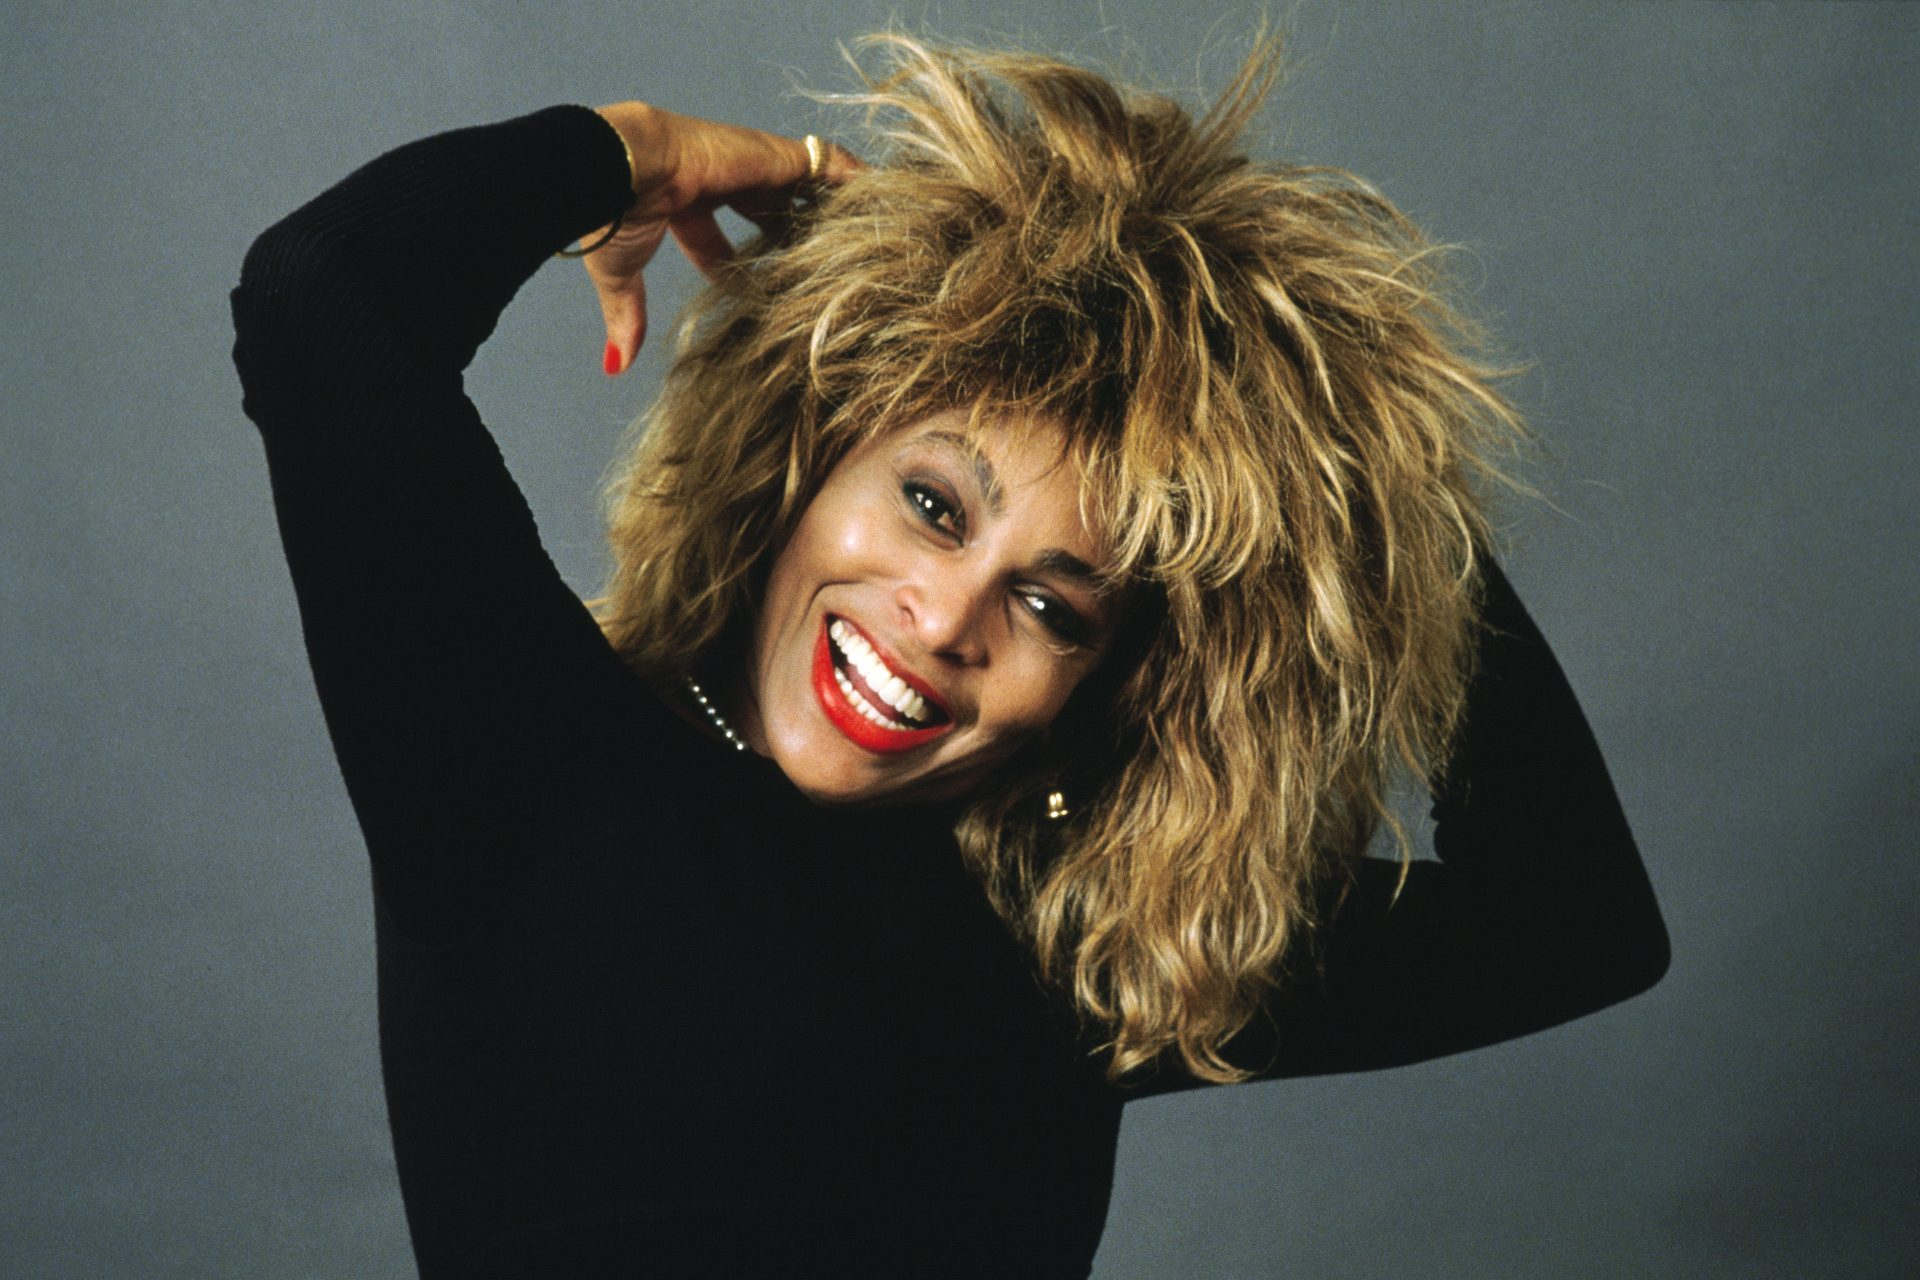 Tina Turner sells her songs: the multimillion-dollar price tag for a legacy